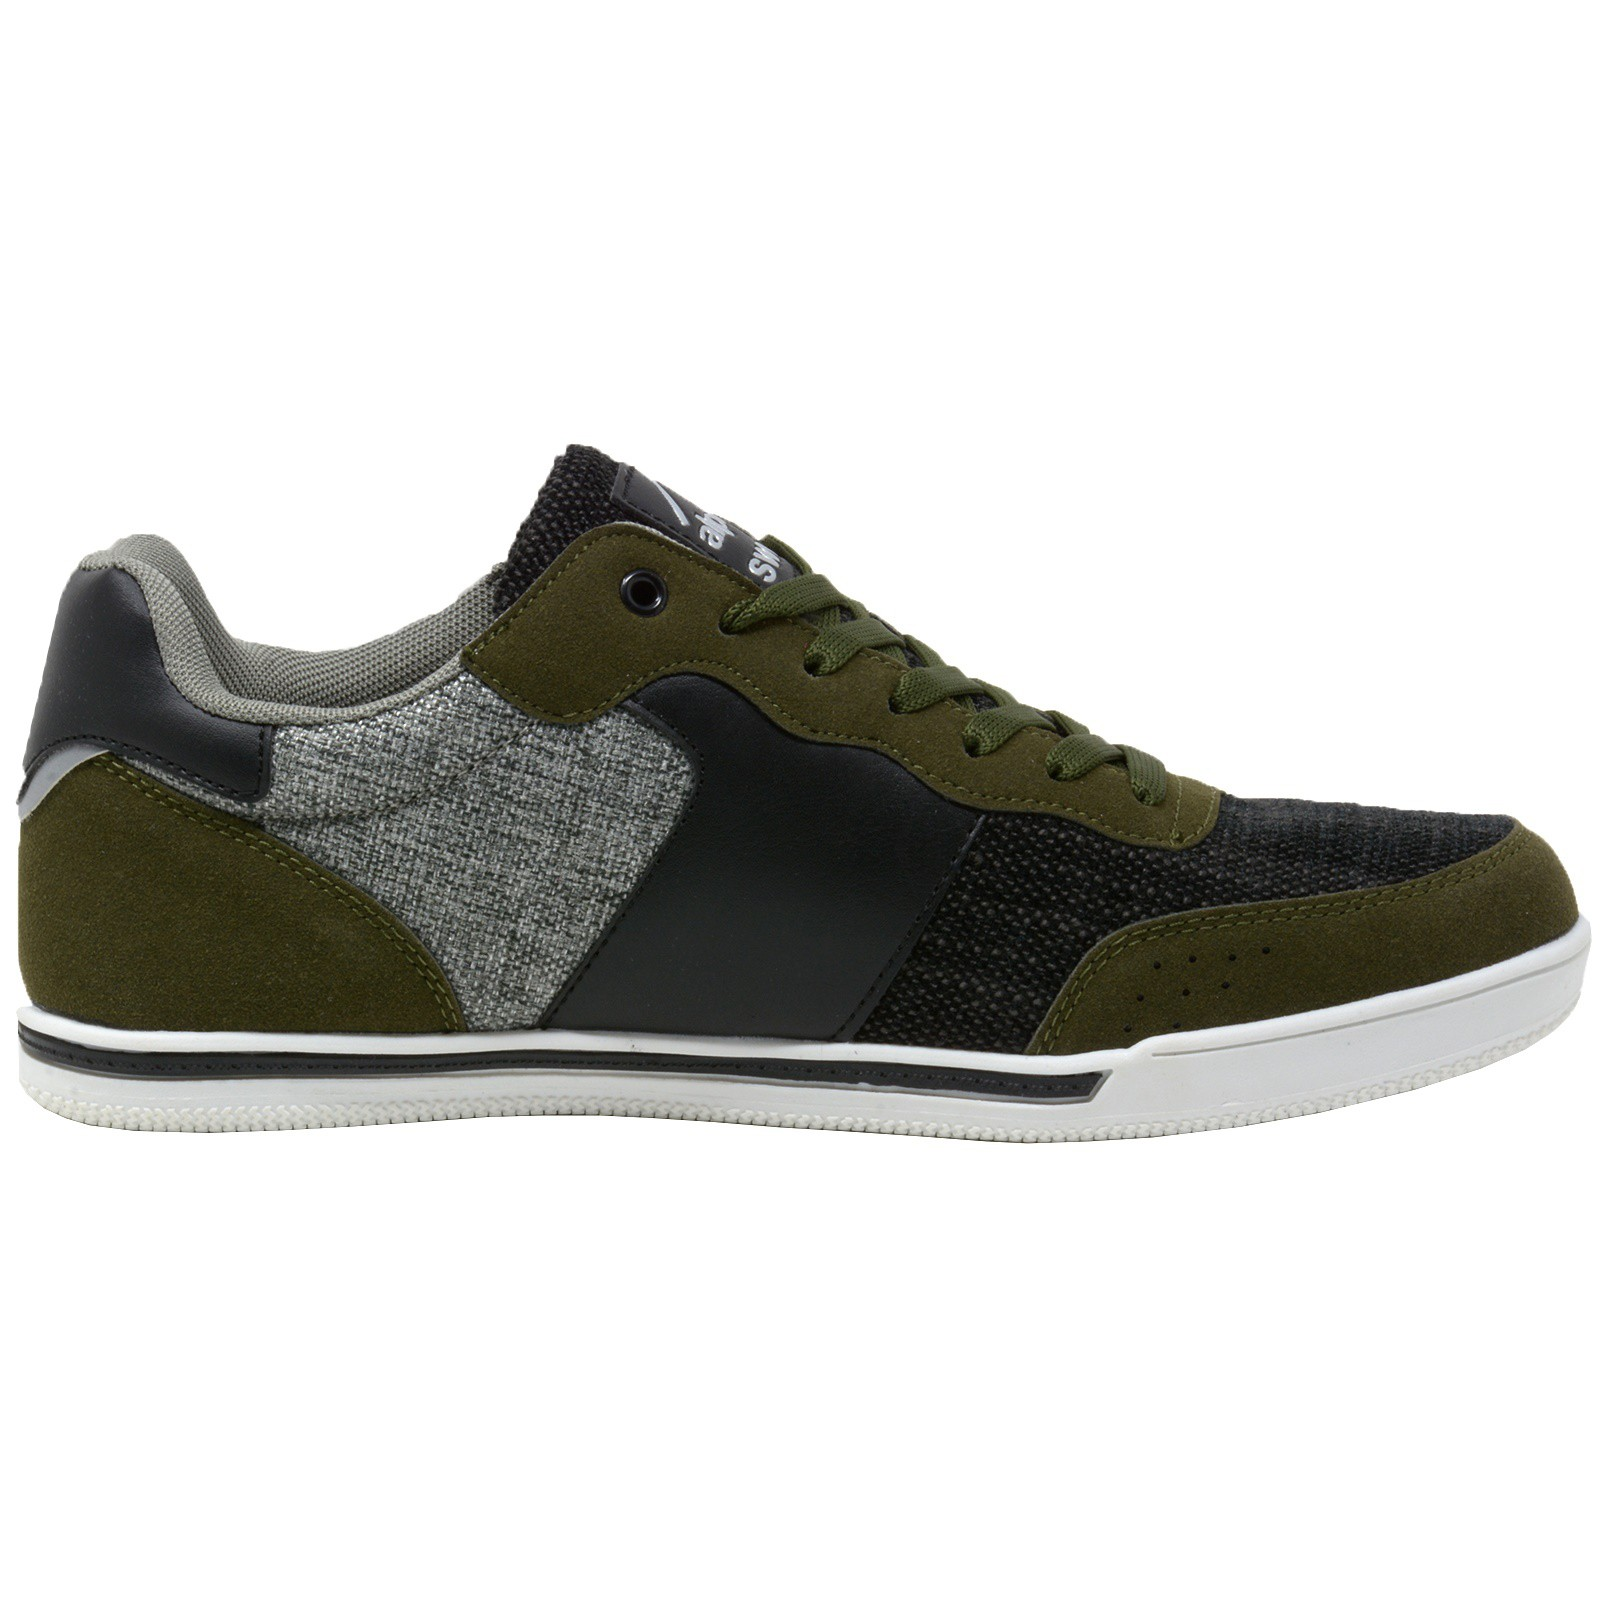 Alpine-Swiss-Liam-Mens-Fashion-Sneakers-Suede-Trim-Low-Top-Lace-Up-Tennis-Shoes thumbnail 43